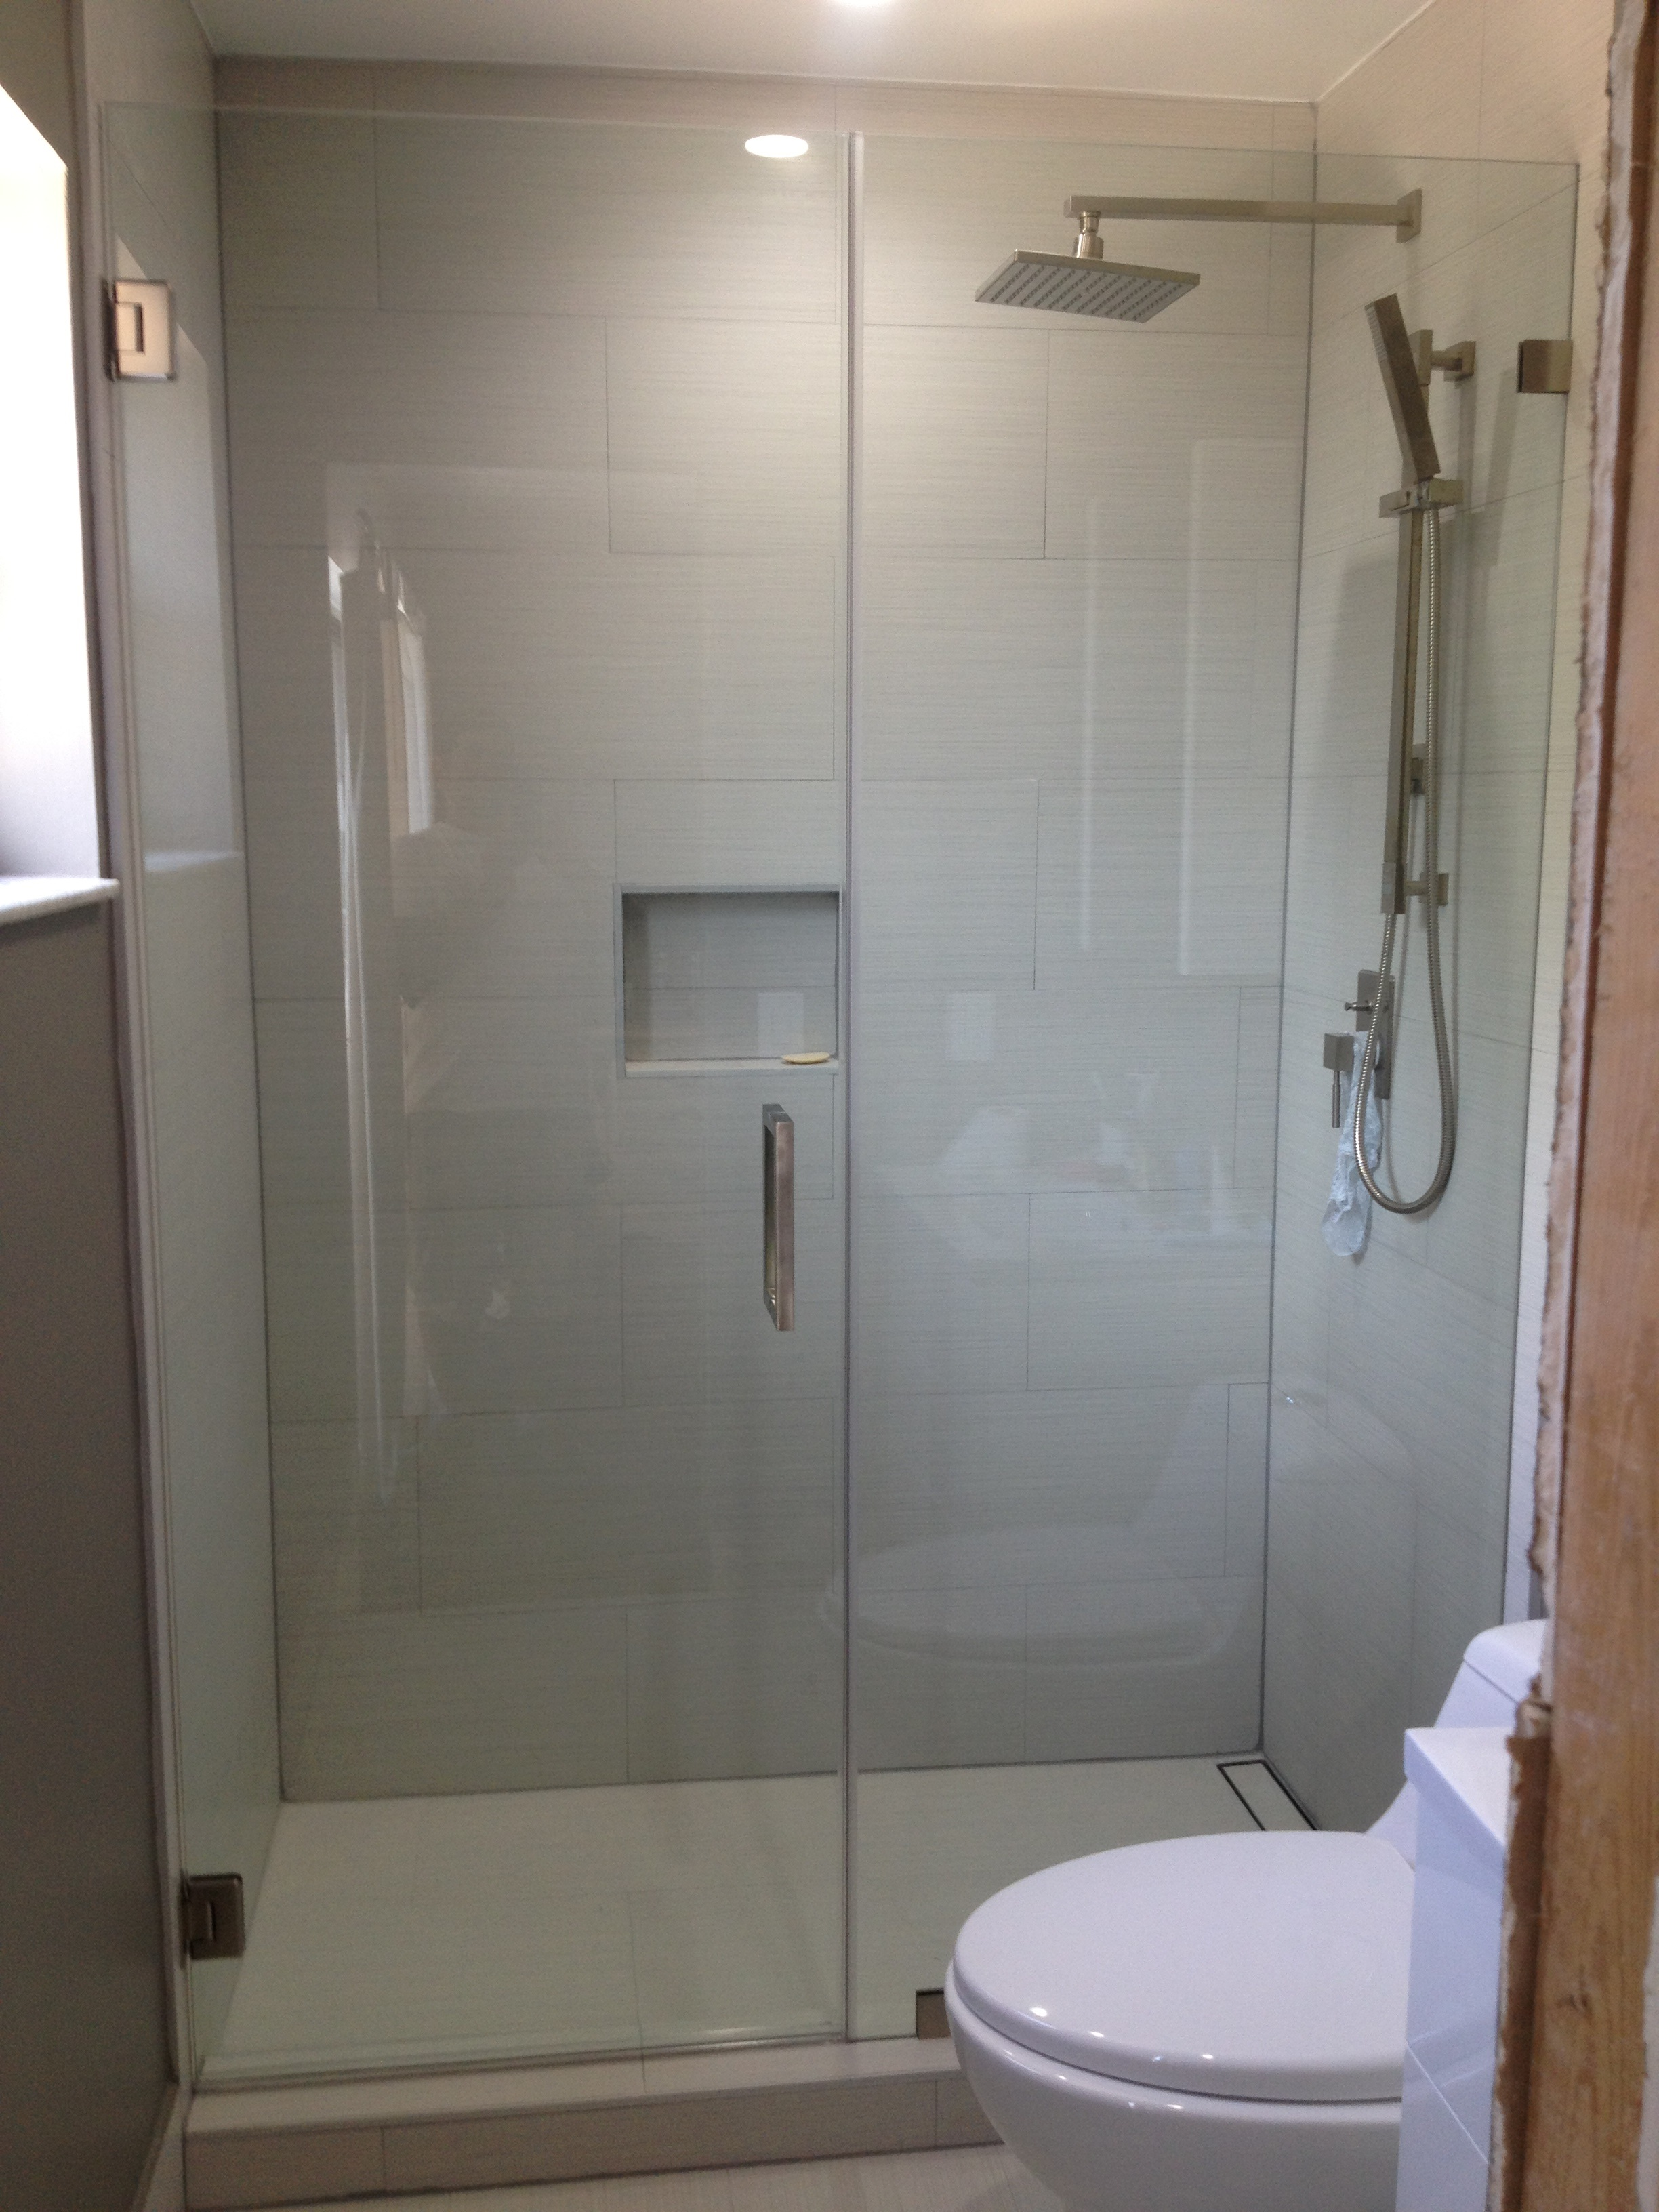 Elegant shower doors 343b main st hackensack nj 07601 yp planetlyrics Image collections